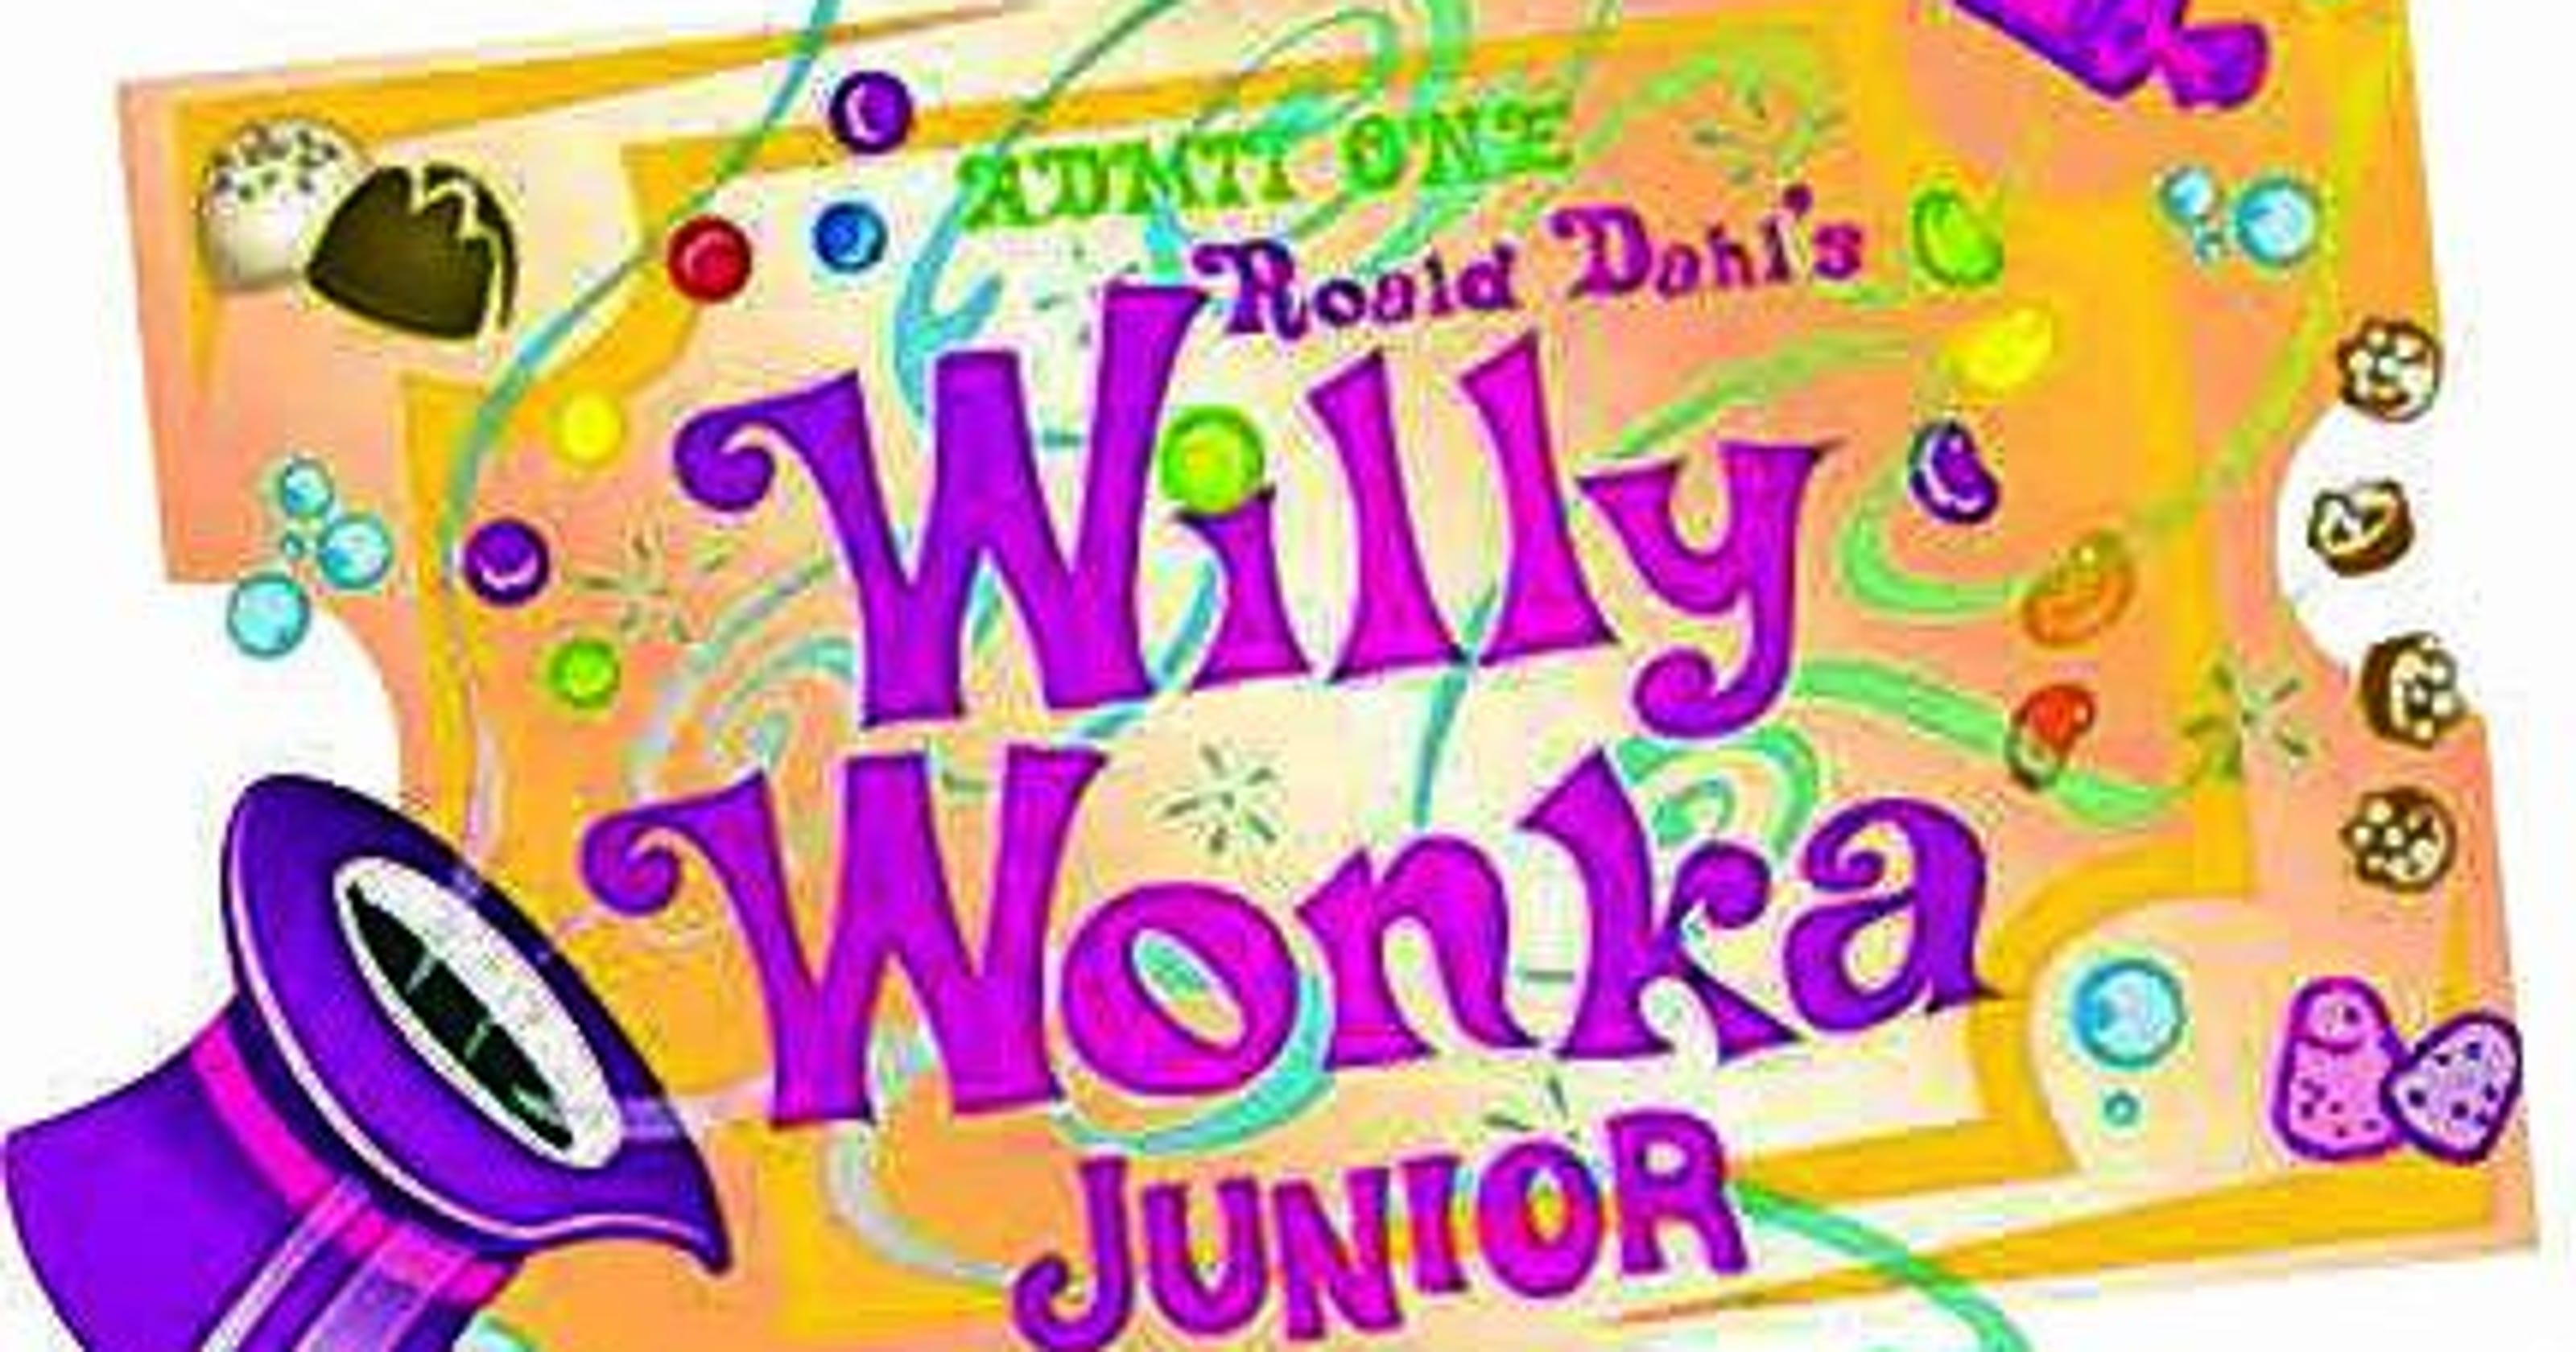 Willy wonka jr clipart clip art freeuse For families: LatinFest, \'Willy Wonka Jr.\' clip art freeuse